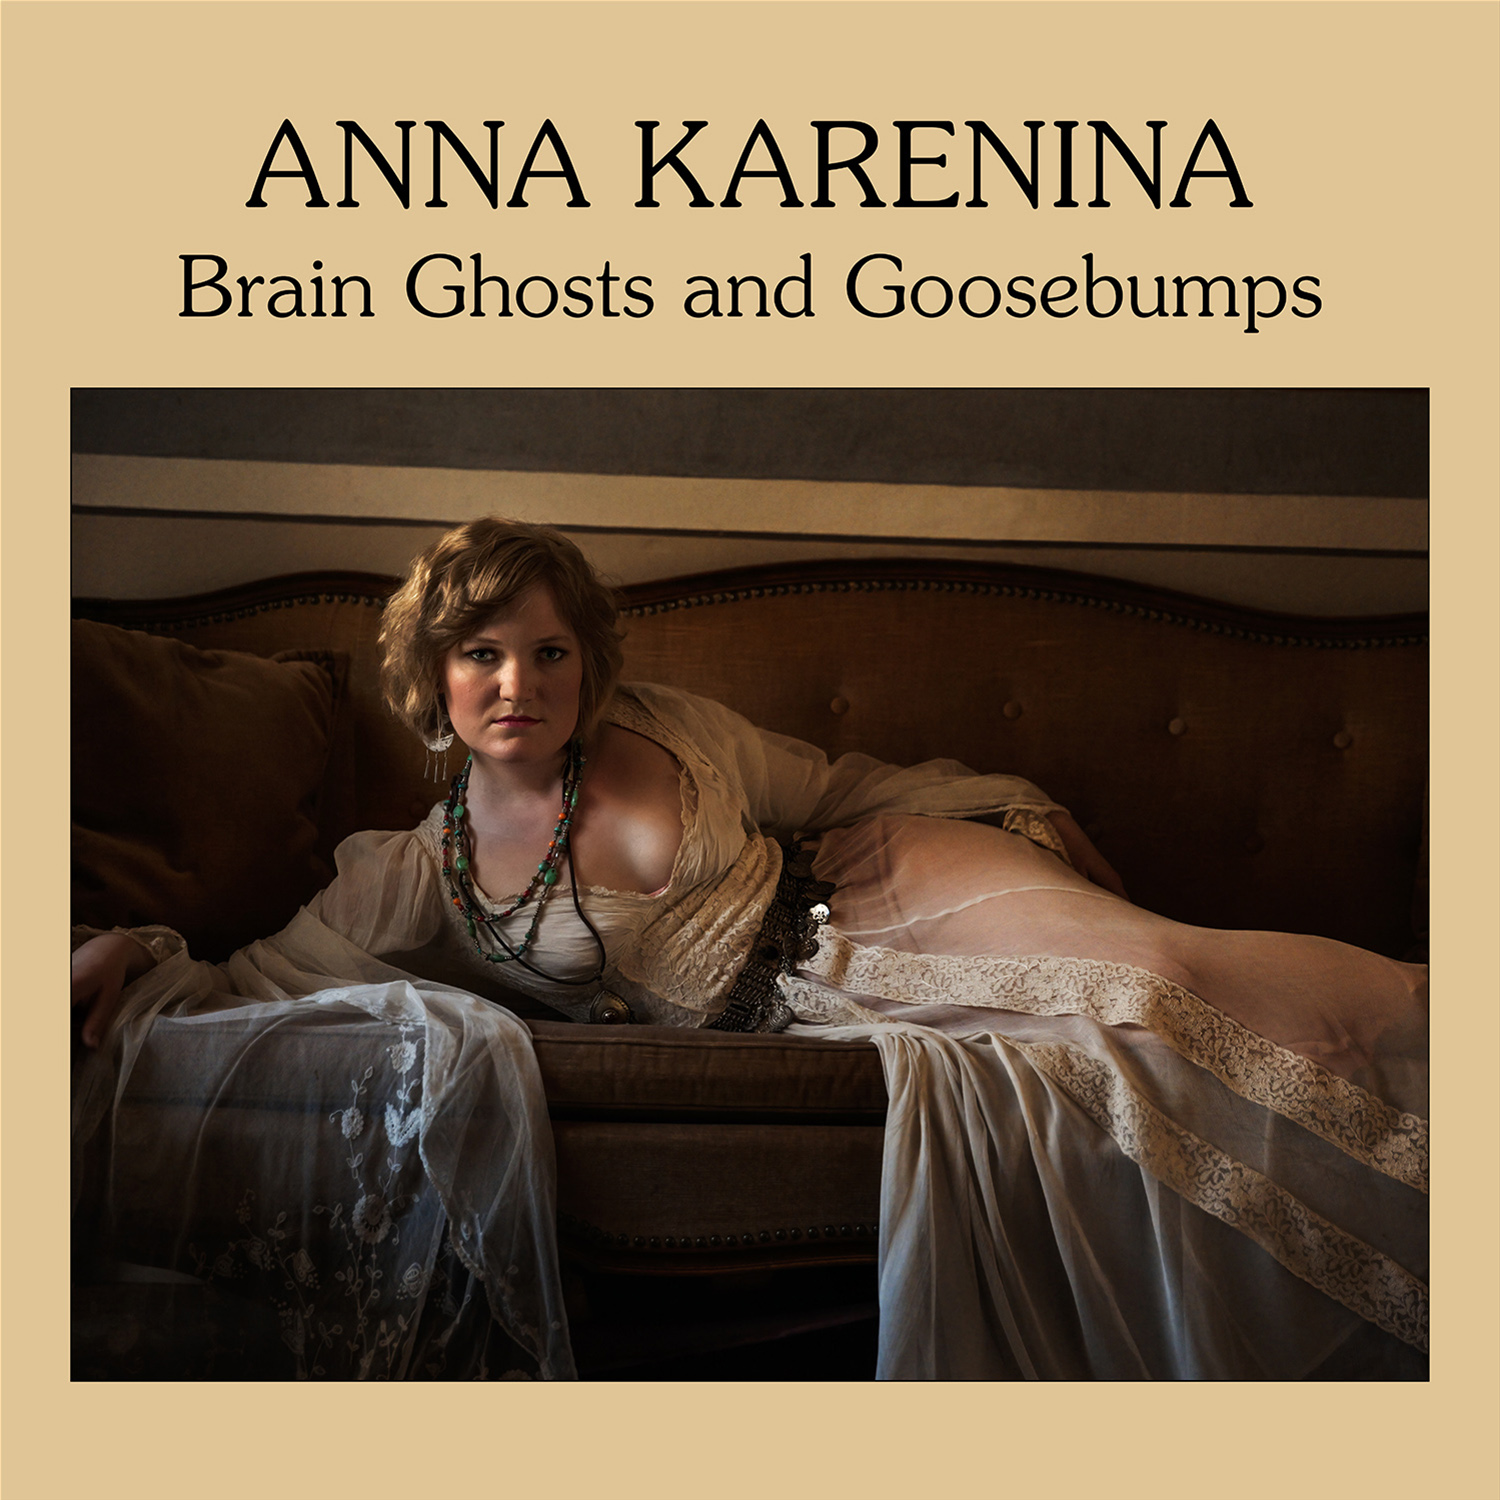 Anna Karenina - Brain Ghosts and Goosebumps